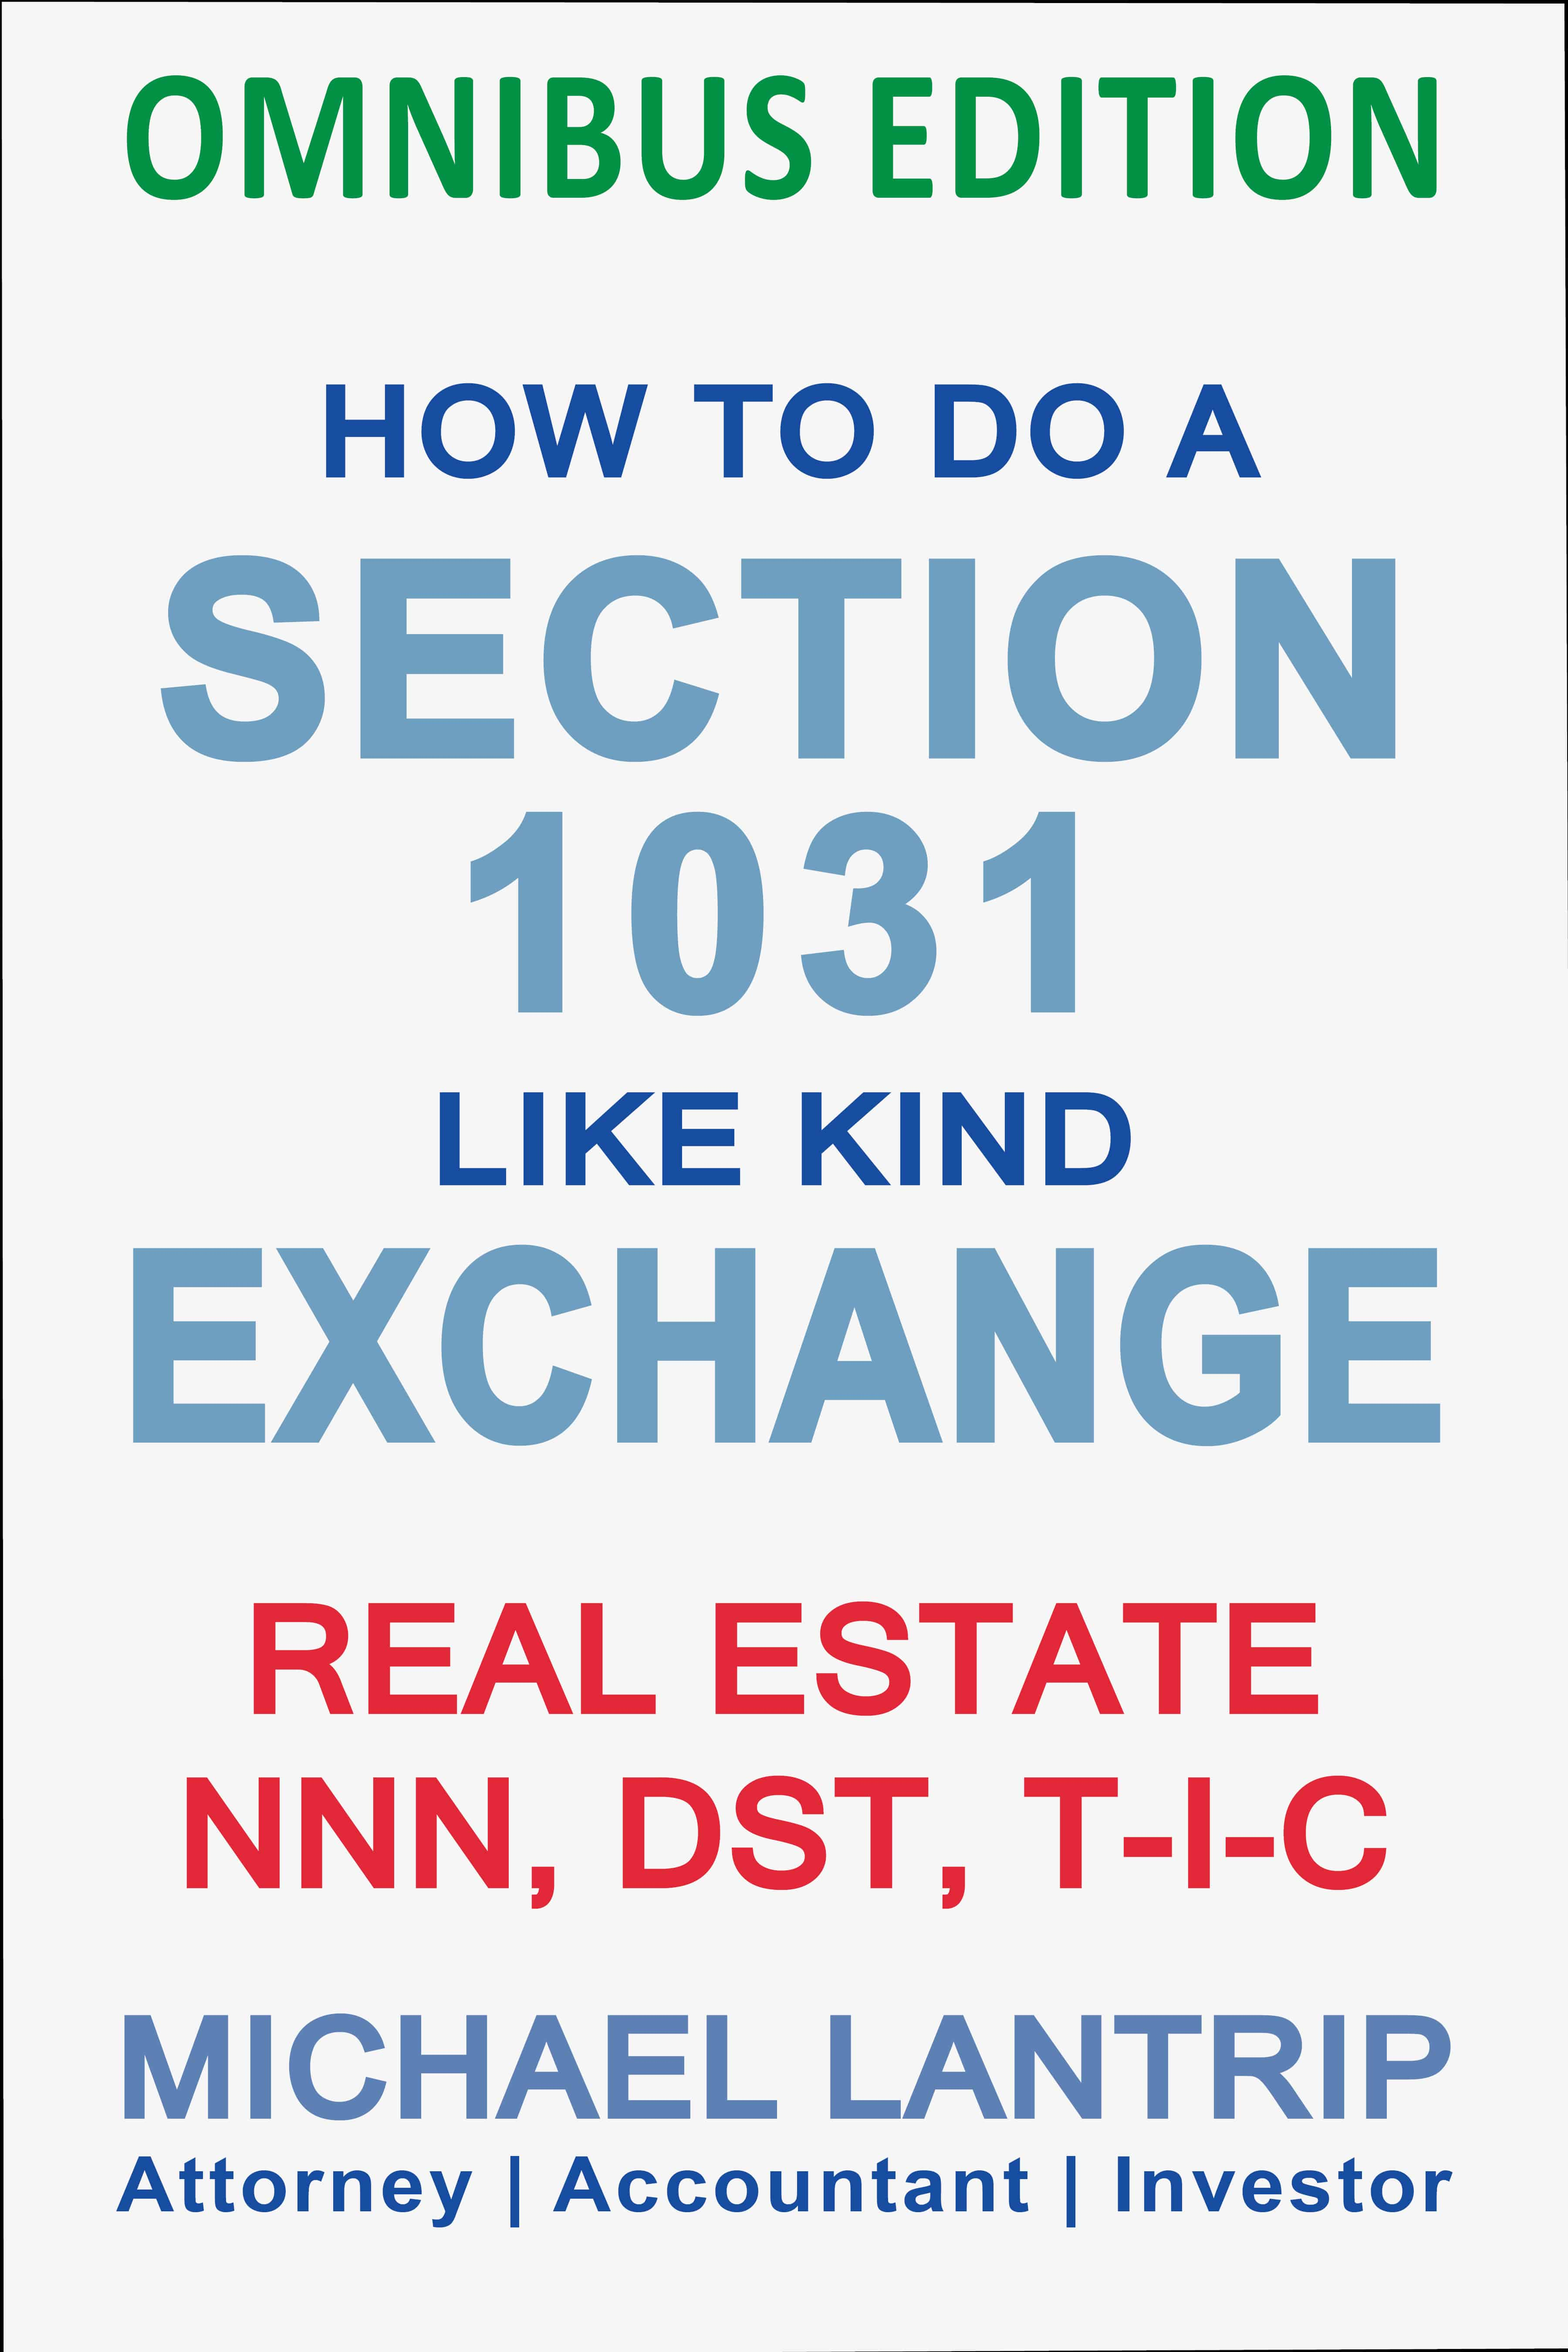 Michael Lantrip | How To Do A Section 1031 Like Kind Exchange